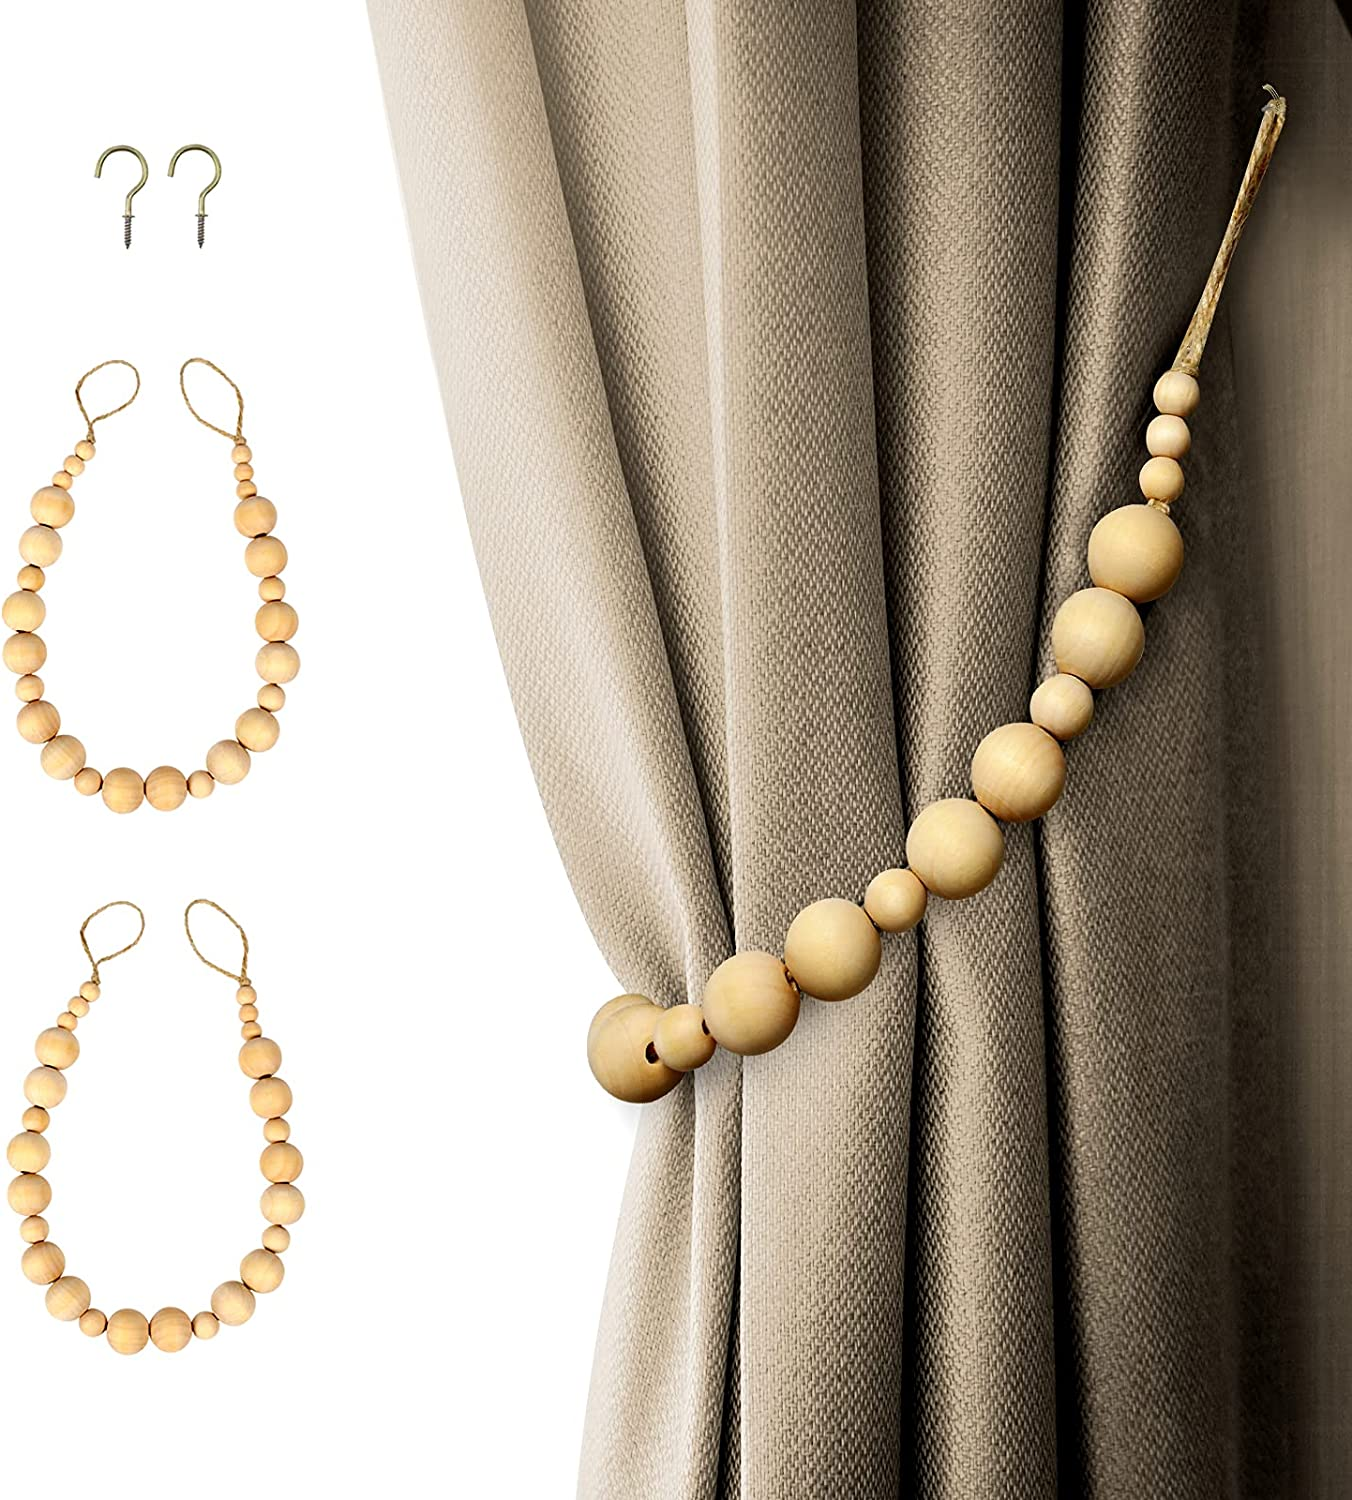 famous Wood Bead Curtain Tiebacks Luxury Wooden 2 H Brass Holder with